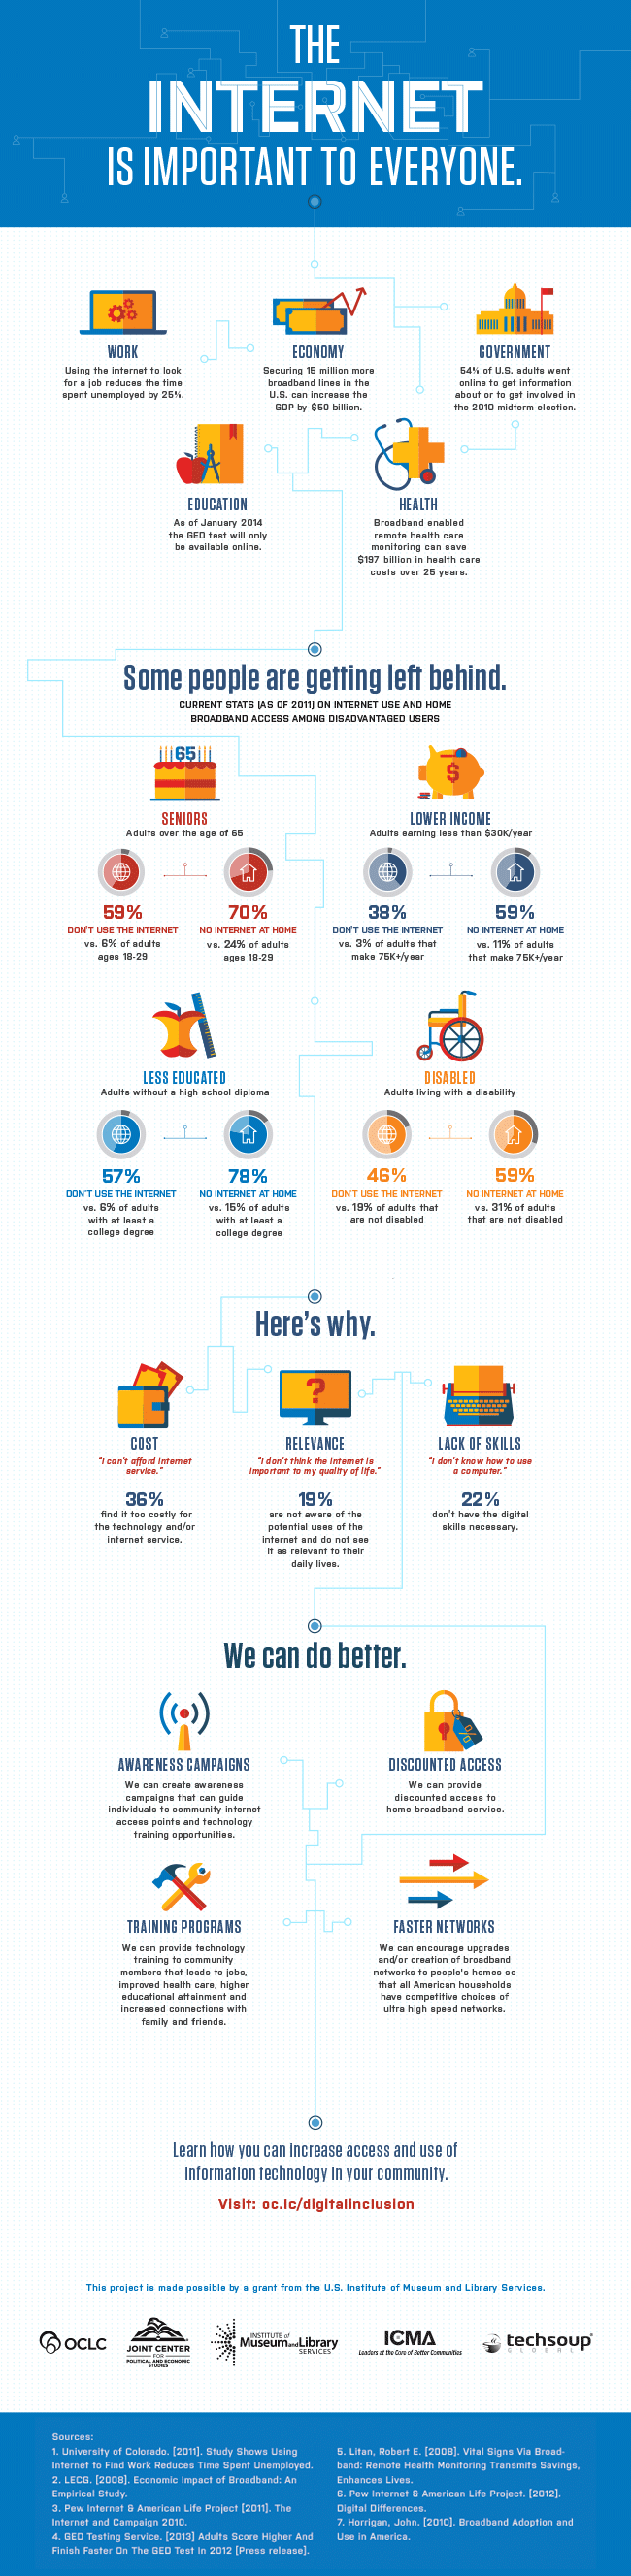 The internet is important to everyone infographic